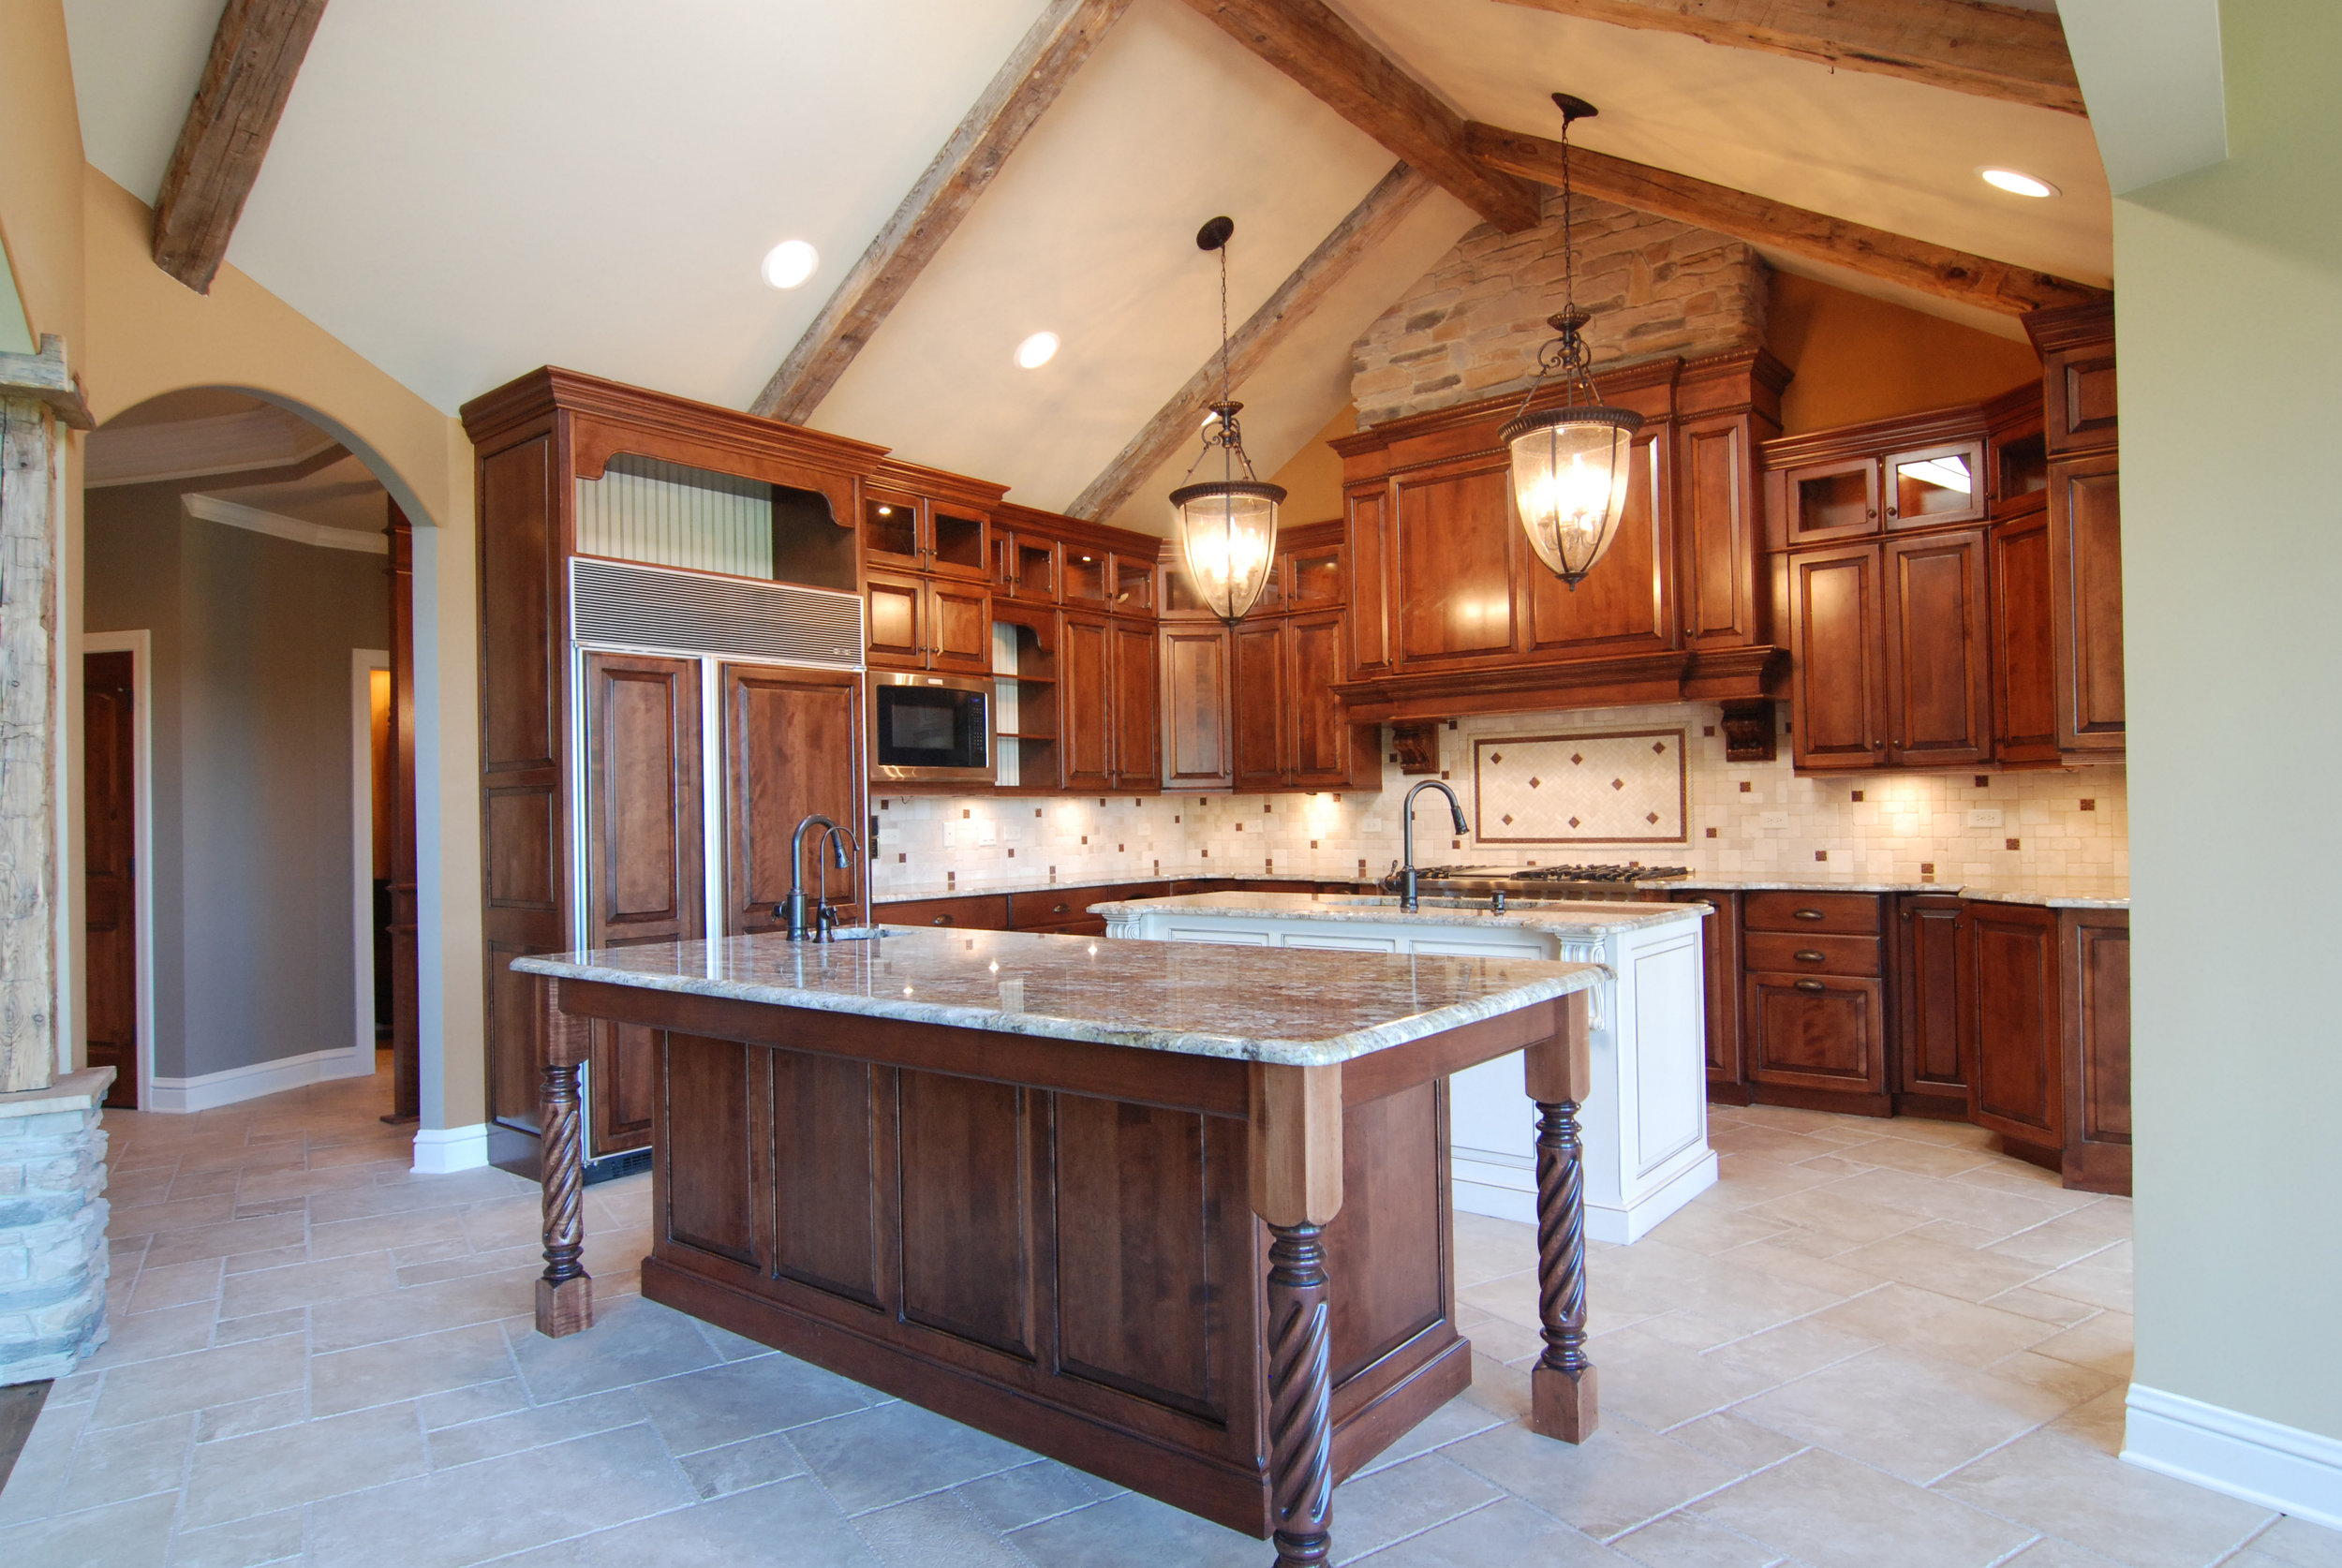 NAPERVILLE IL KITCHEN RUSTIC REMODELING